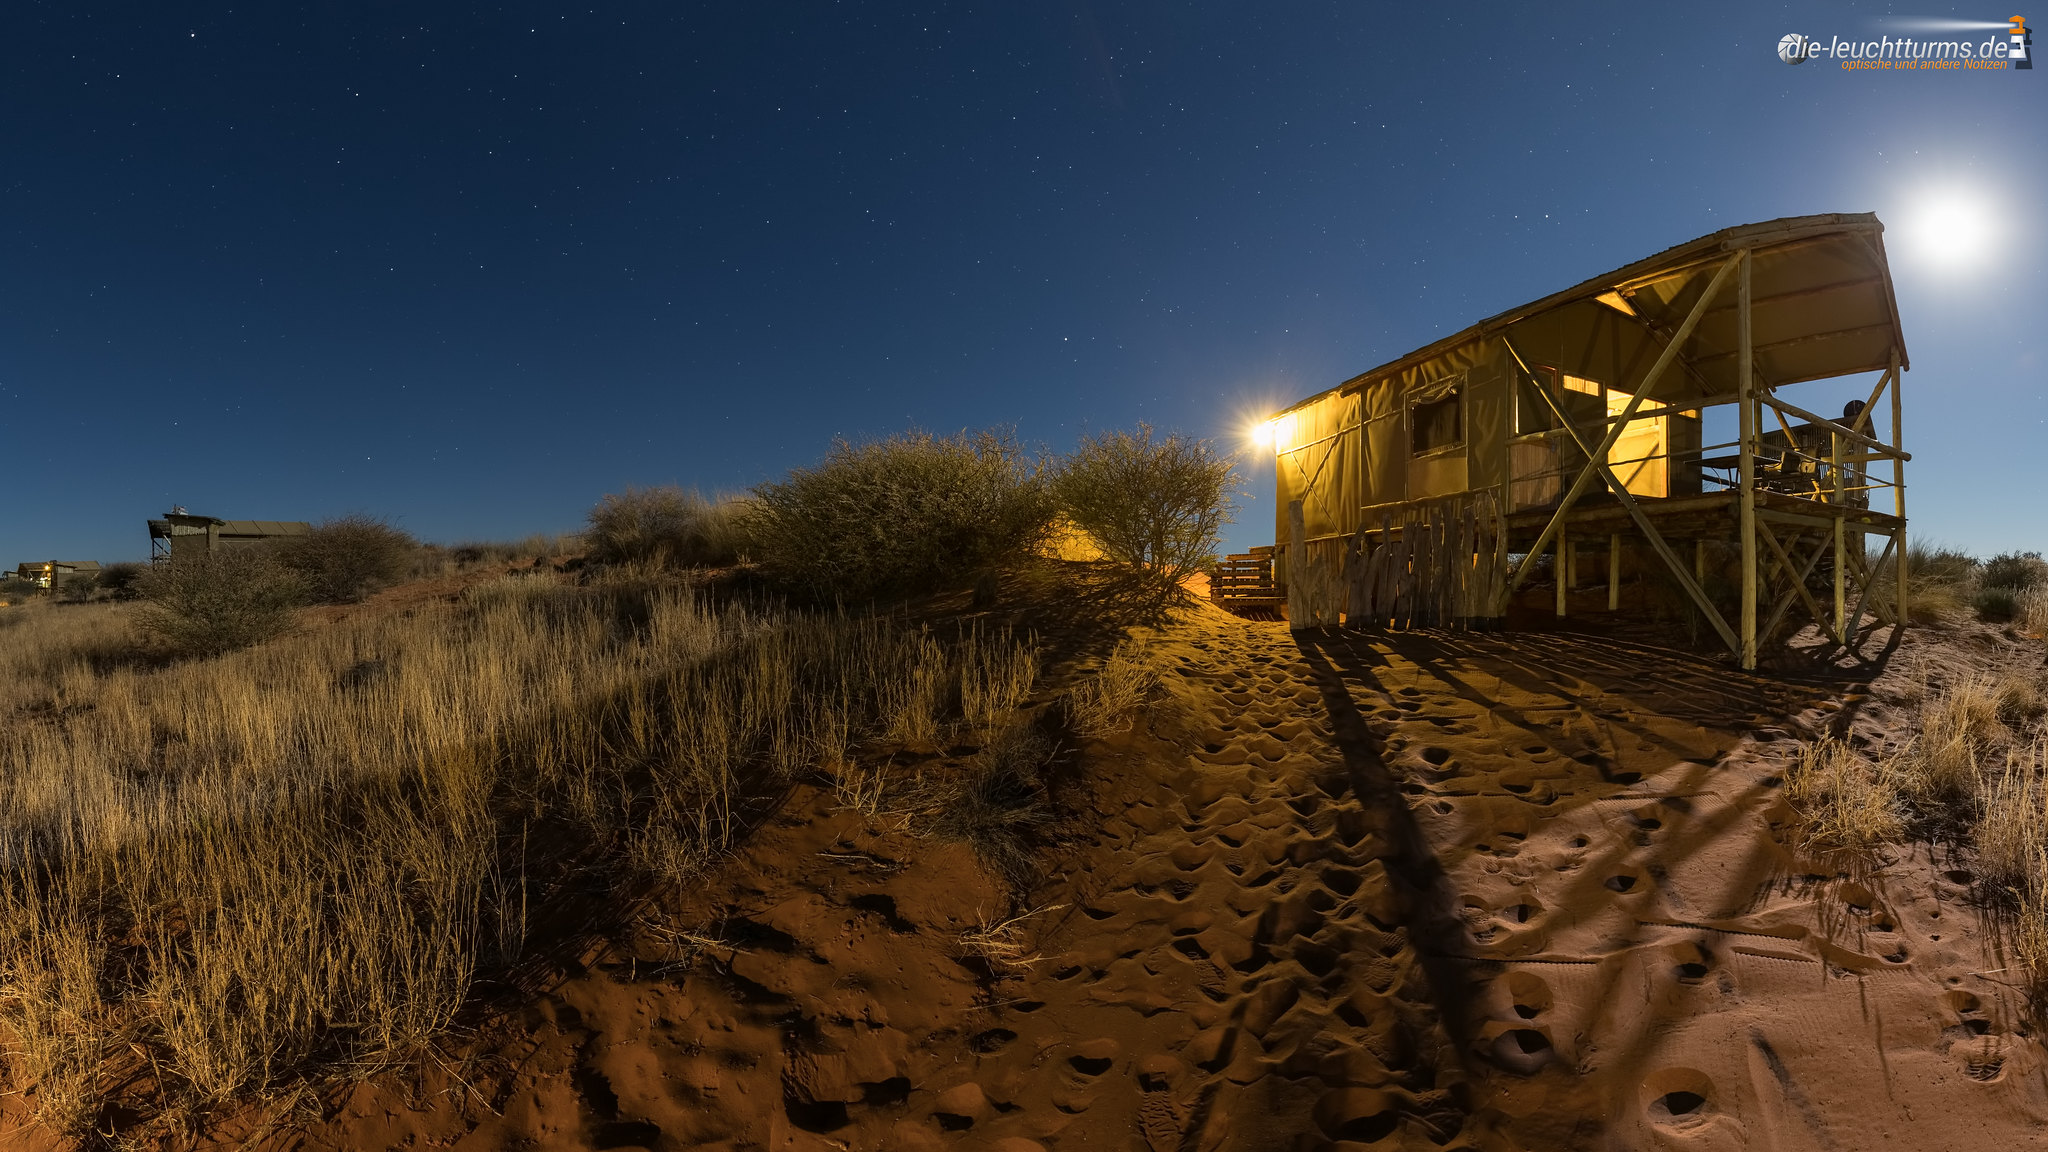 The night comes in the Kalahari